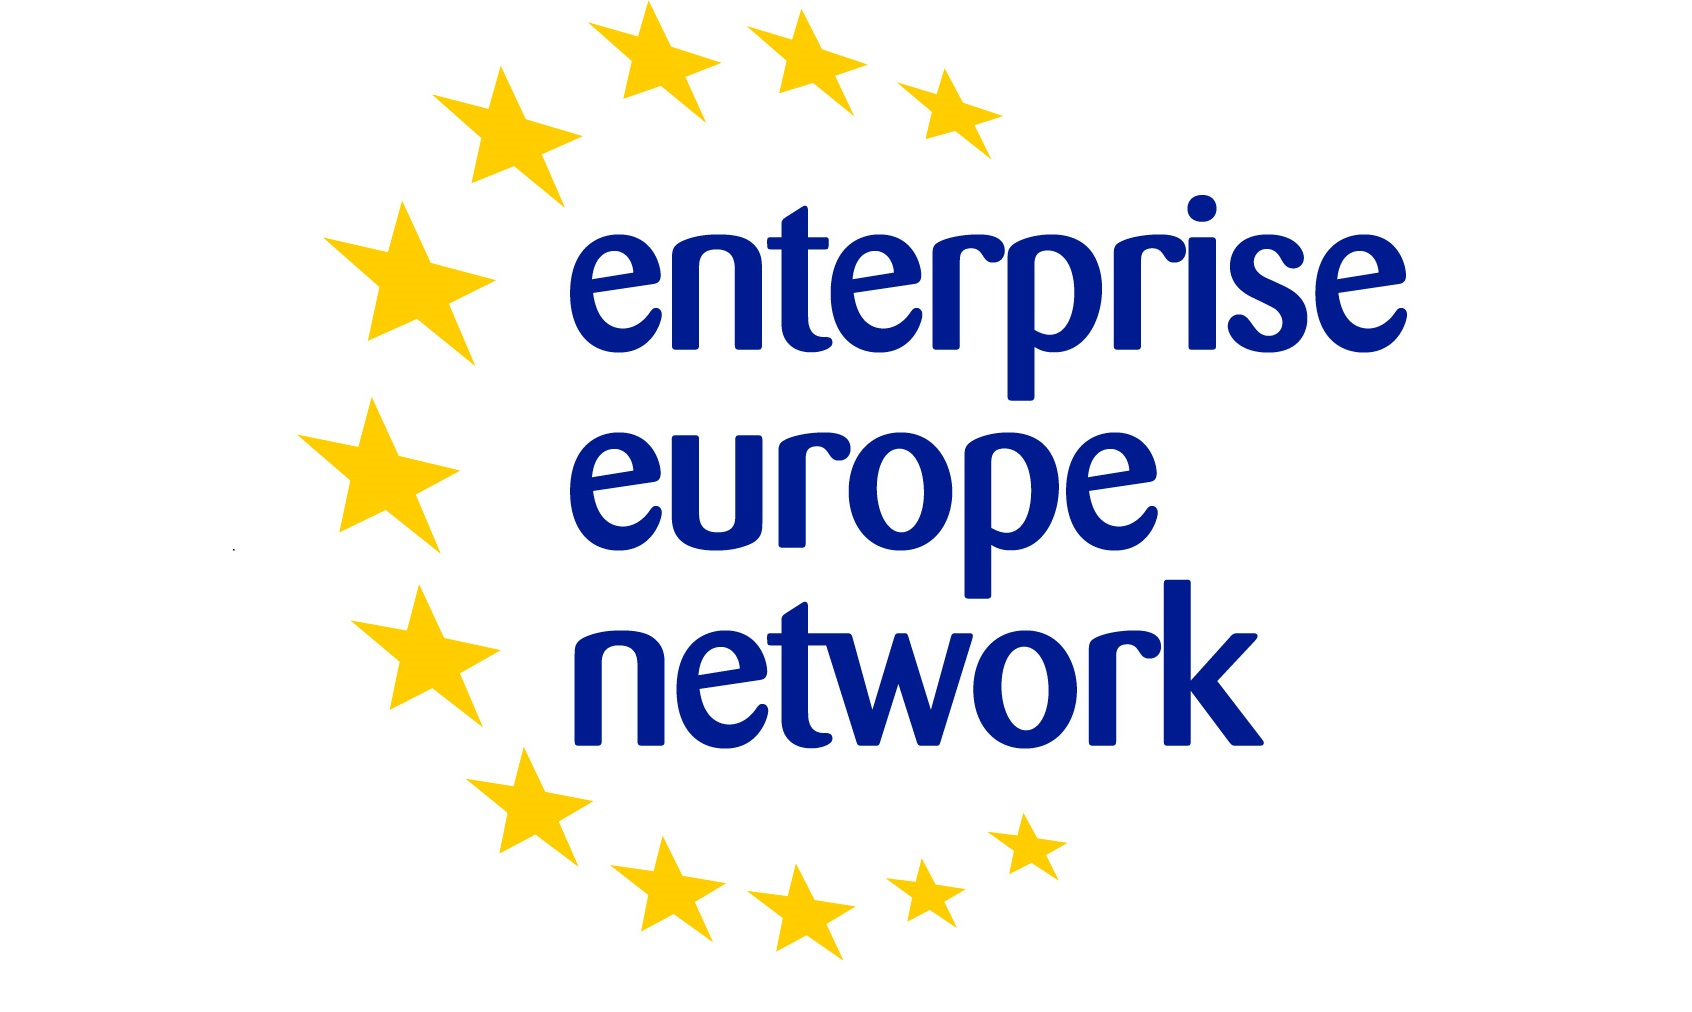 Enterprise europe network - Logo